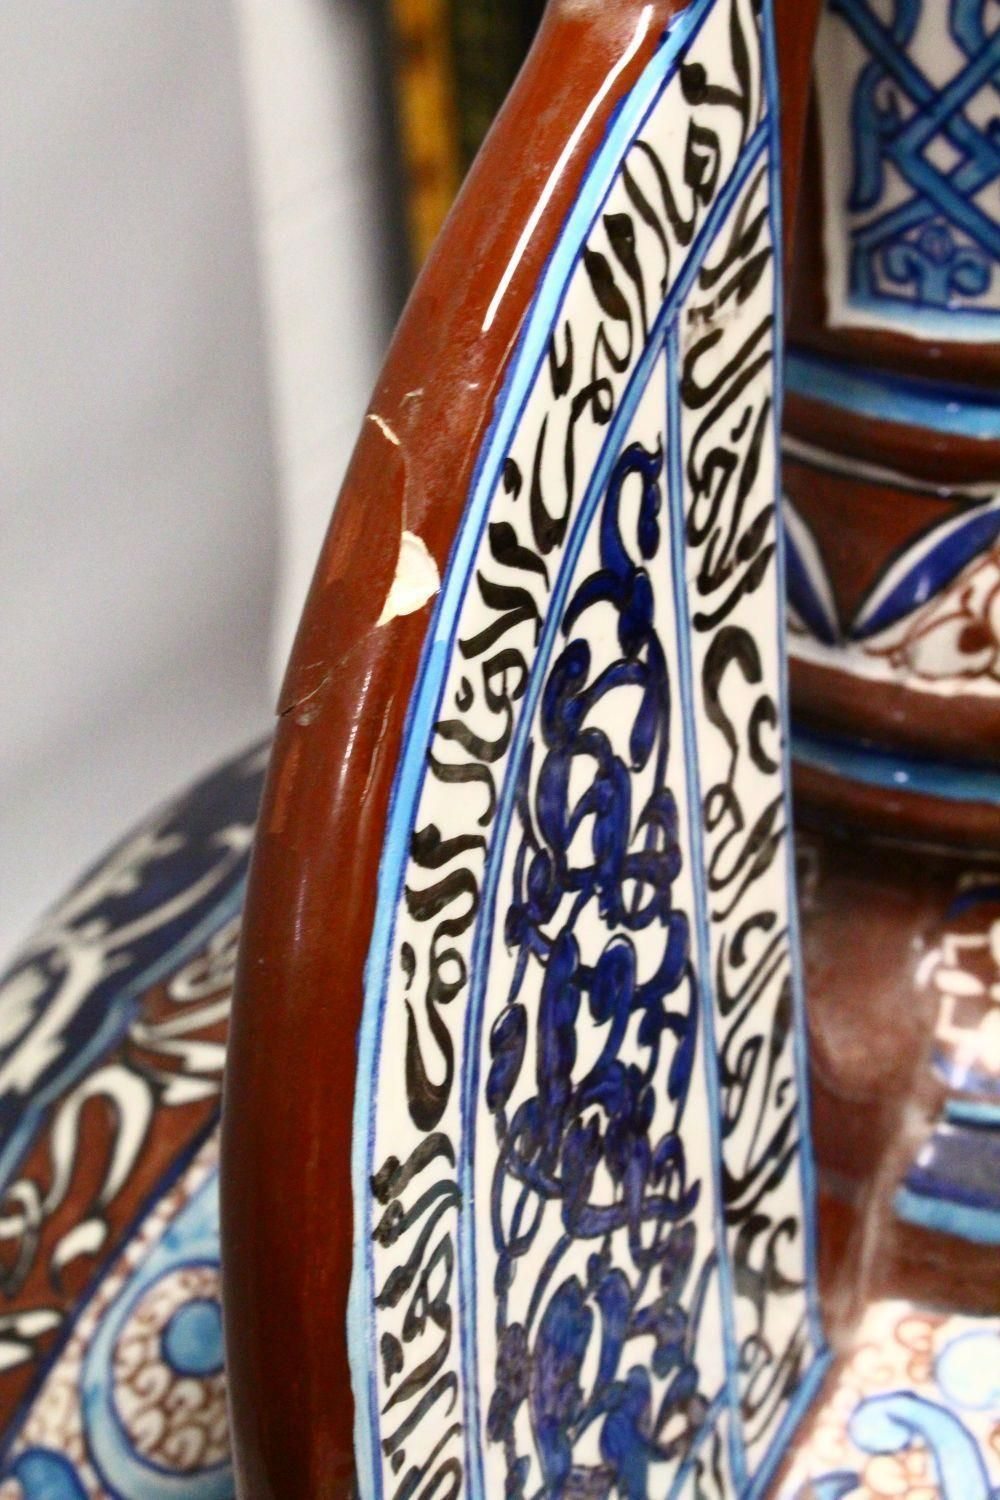 A HUGE 19TH CENTURY ISLAMIC HISPANO MORESQUE POTTERY ALHAMBRA STYLE POTTERY VASE & STAND, possibly - Image 7 of 10